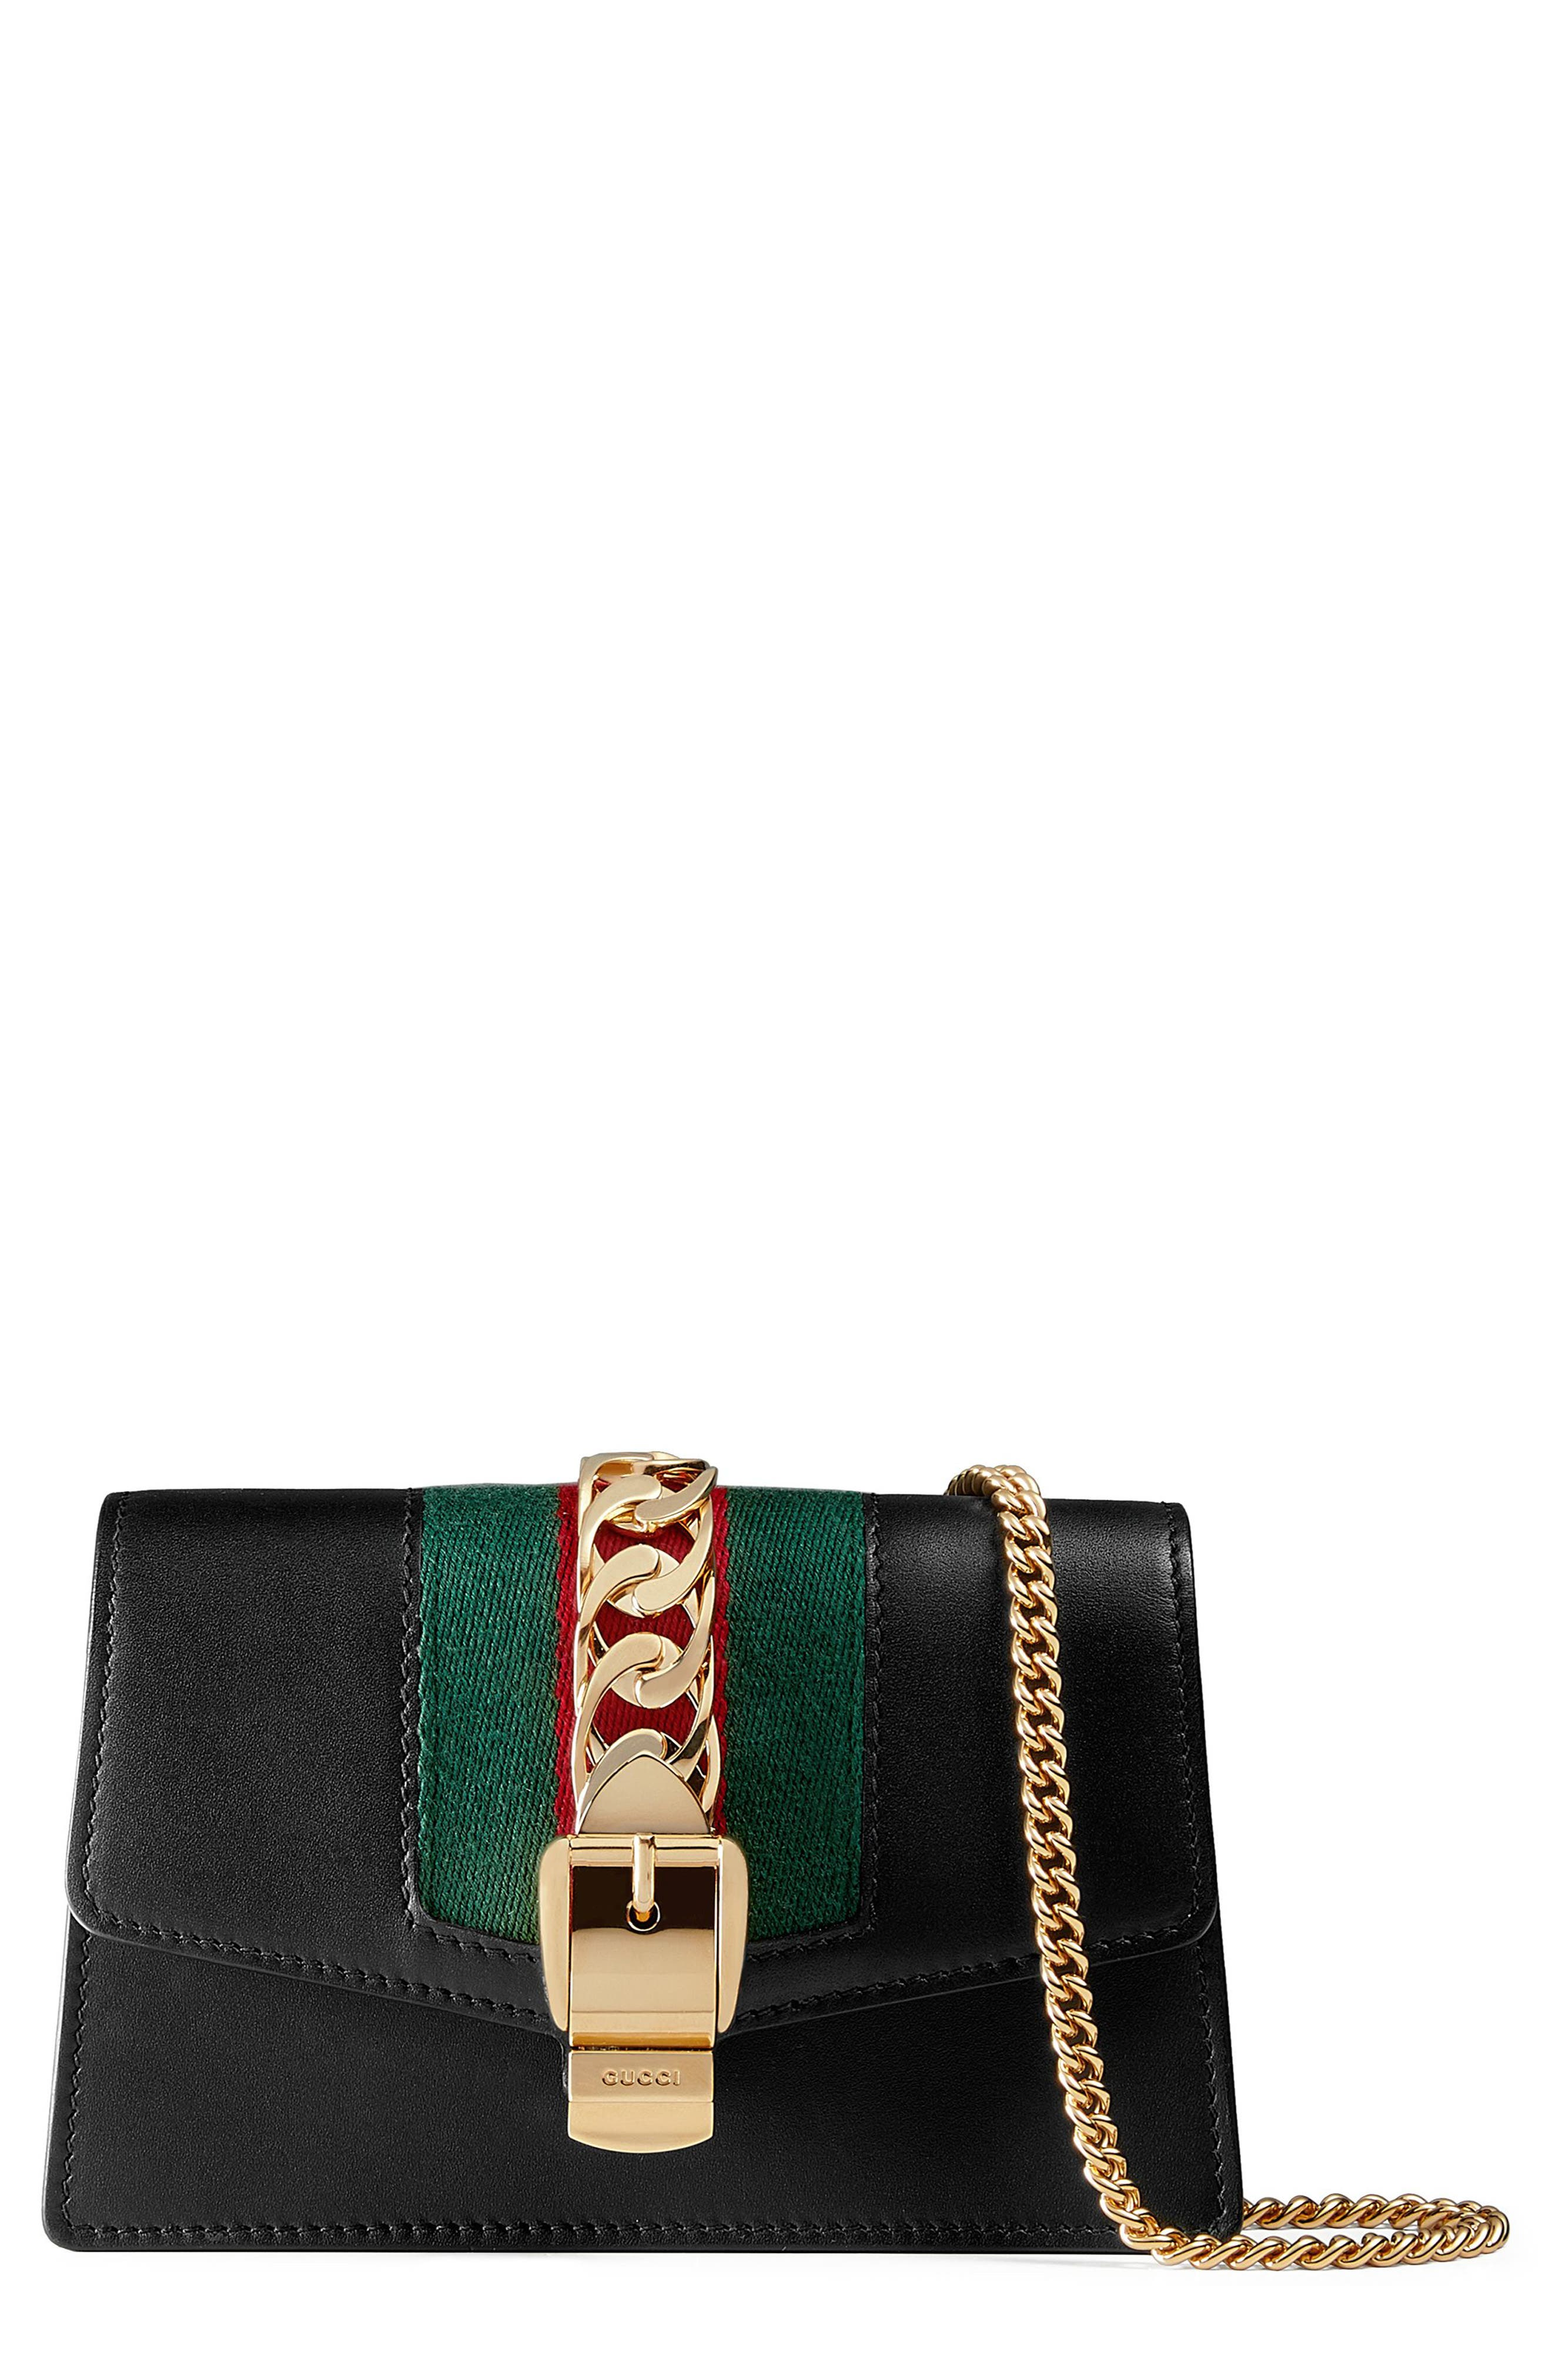 GUCCI Super Mini Sylvie Chain Wallet, Main, color, 001